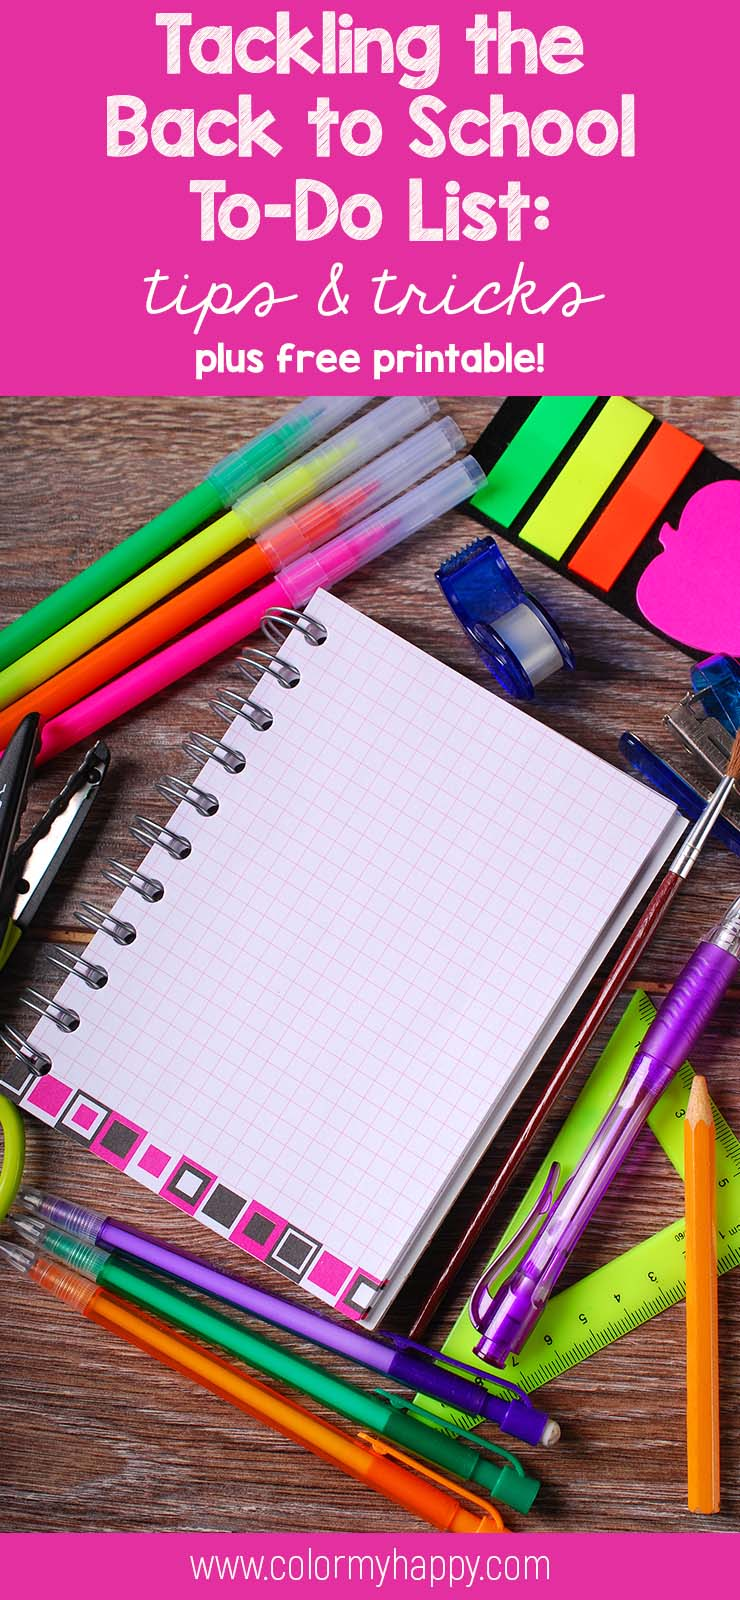 A notebook, tape, stapler, pens, scissors, post-its, and markers on a table.